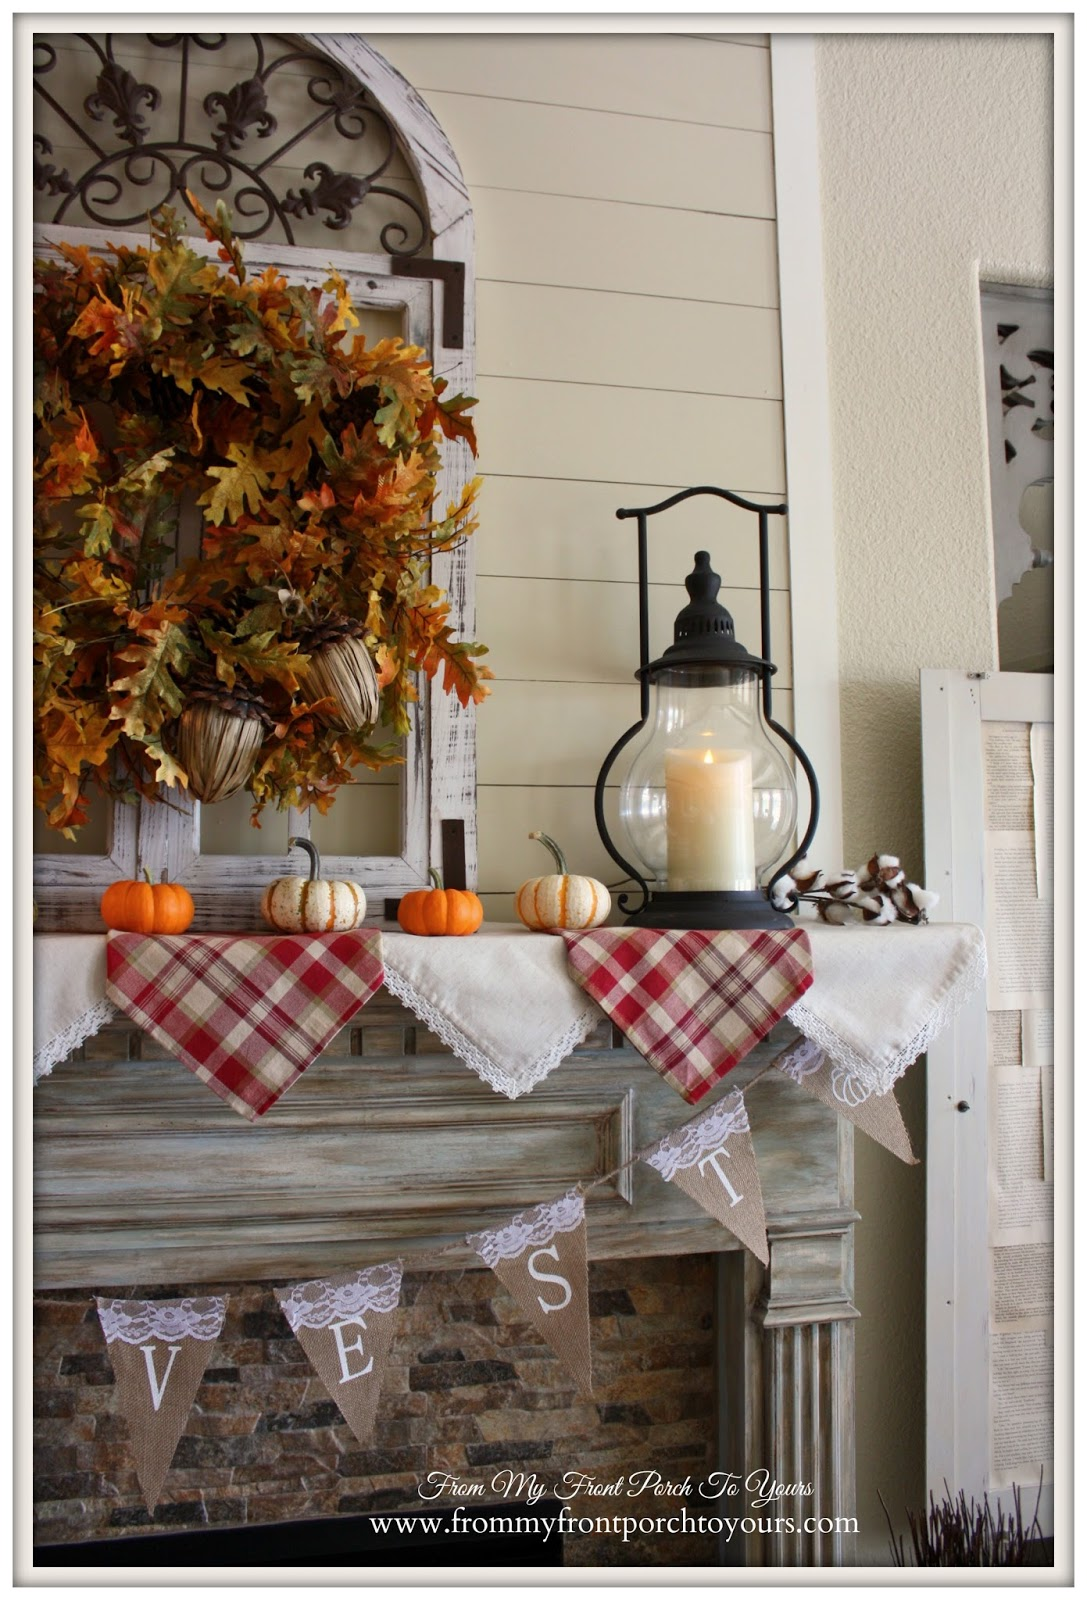 Farmhouse Fall Mantel Carriage House Lantern Decor Steals From My Front Porch